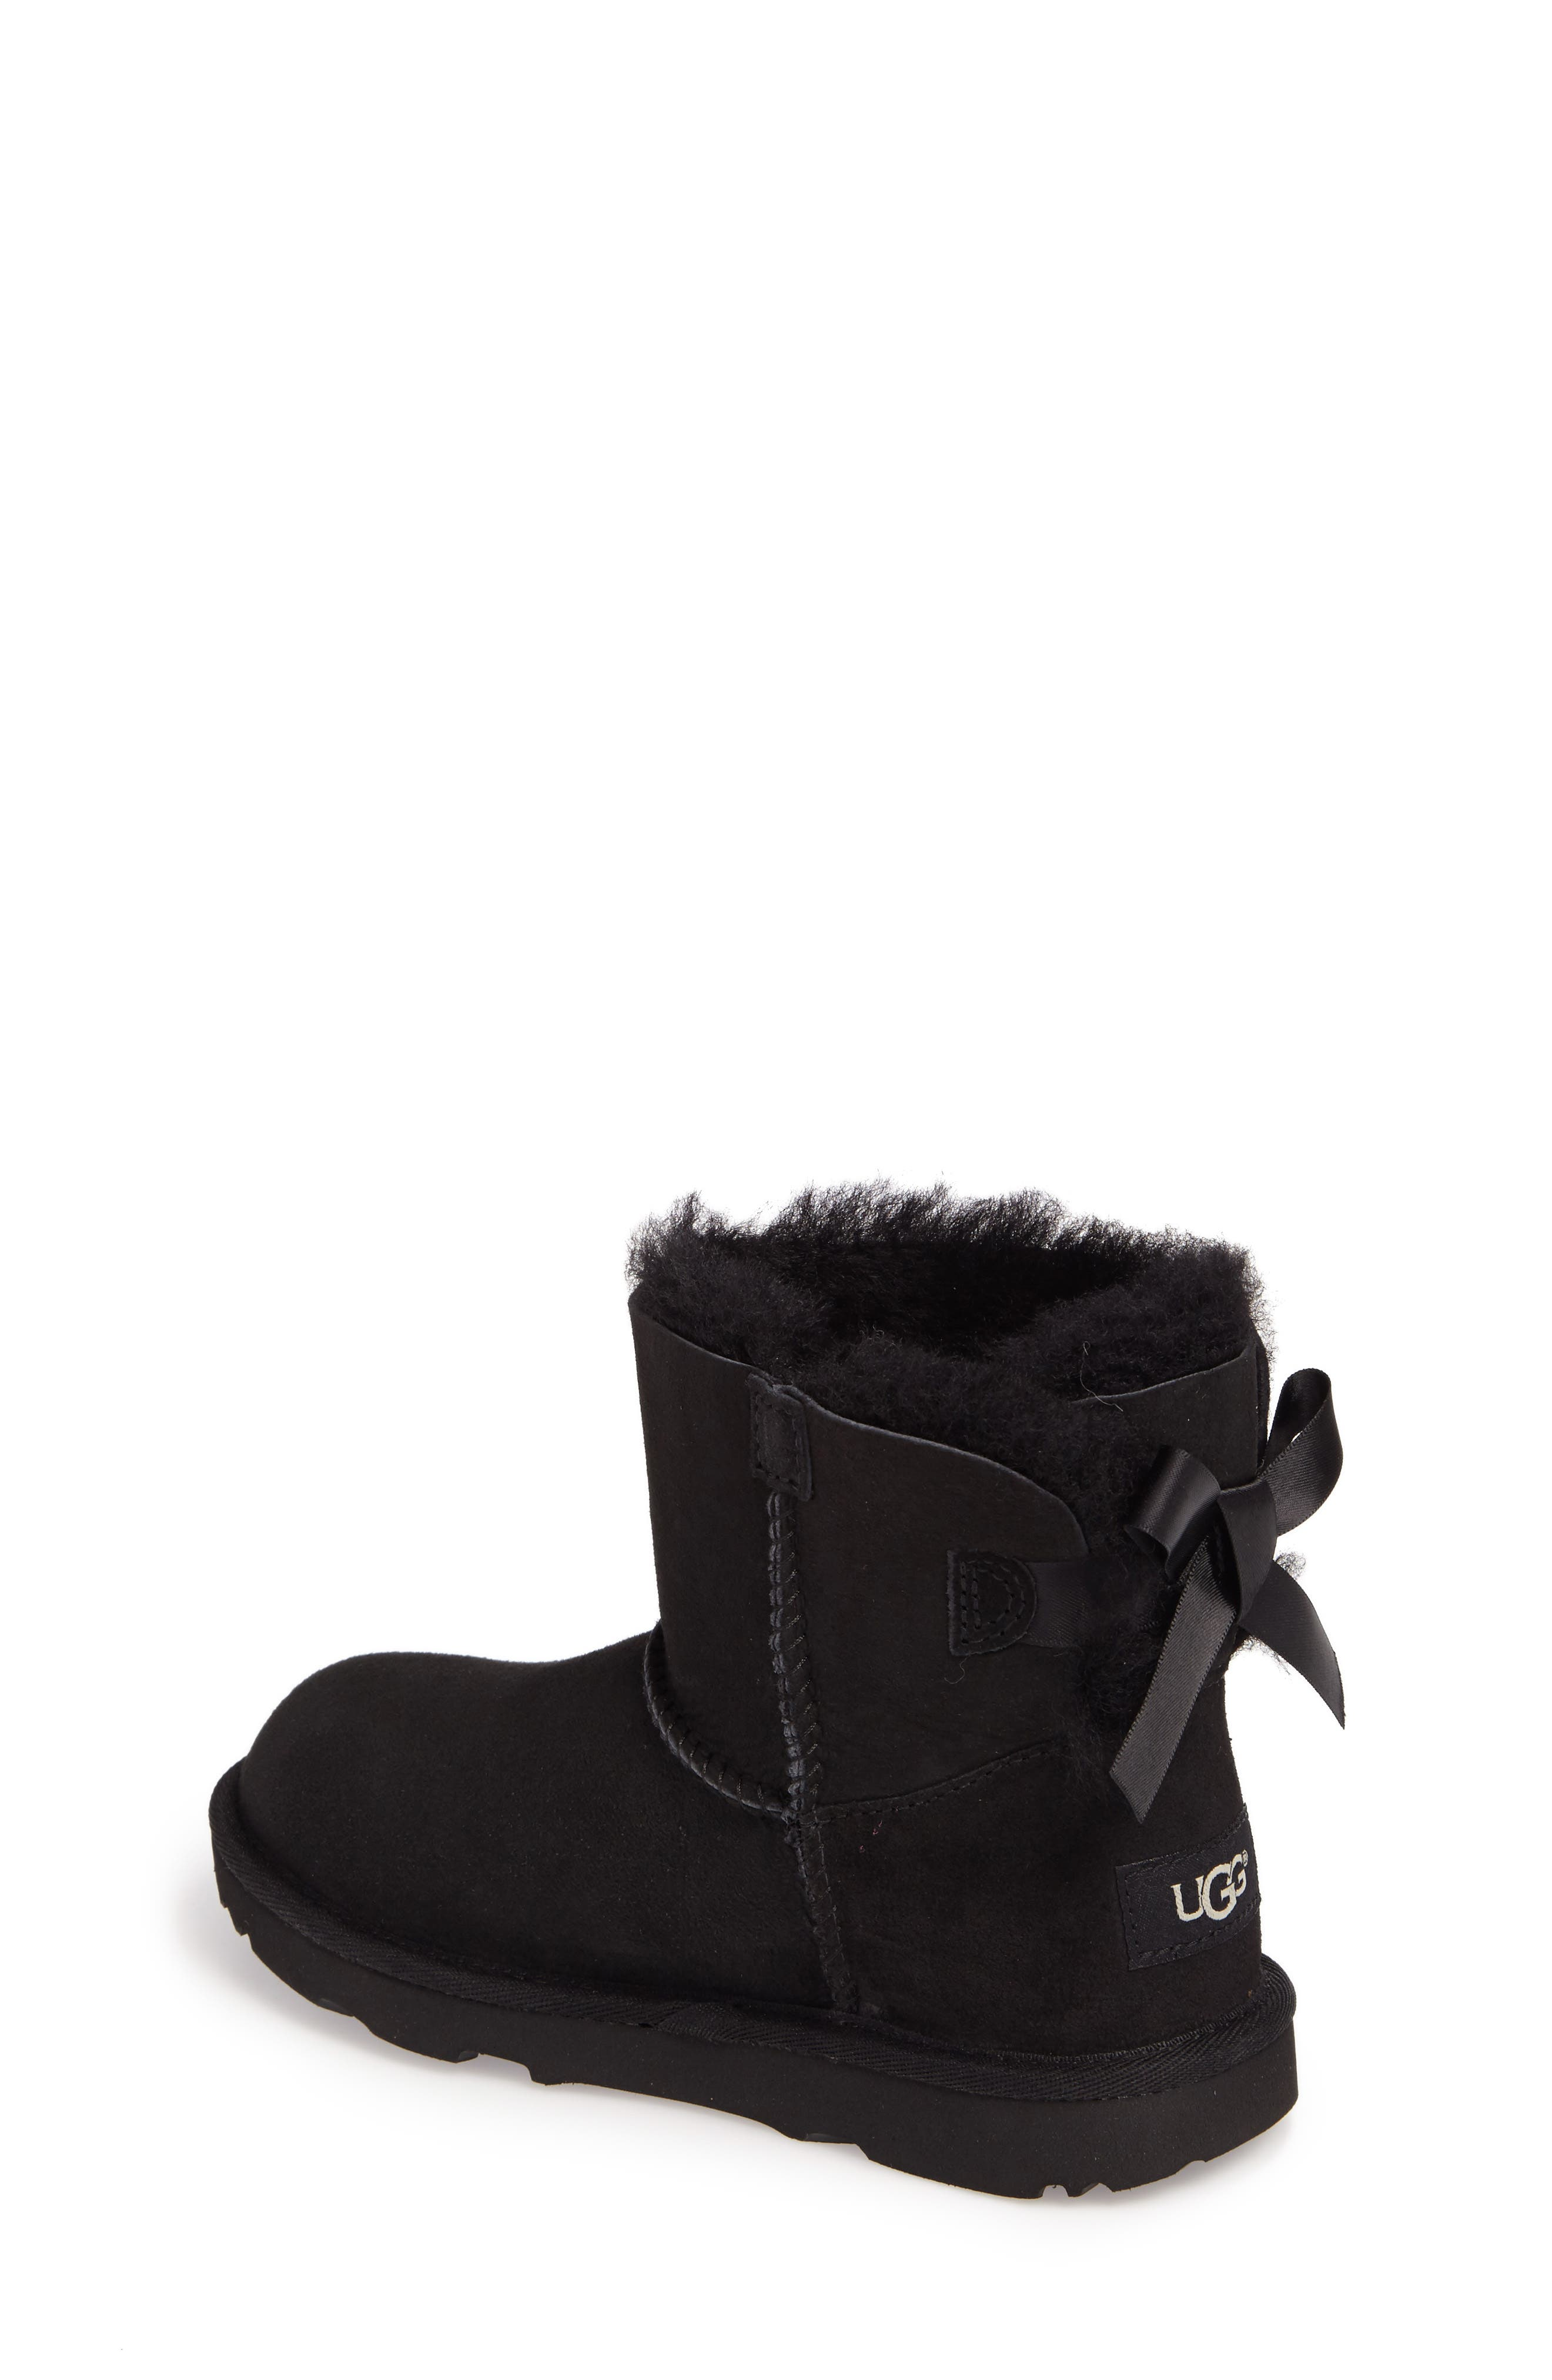 UGG<SUP>®</SUP>, Mini Bailey Bow II Water Resistant Boot, Alternate thumbnail 2, color, BLACK